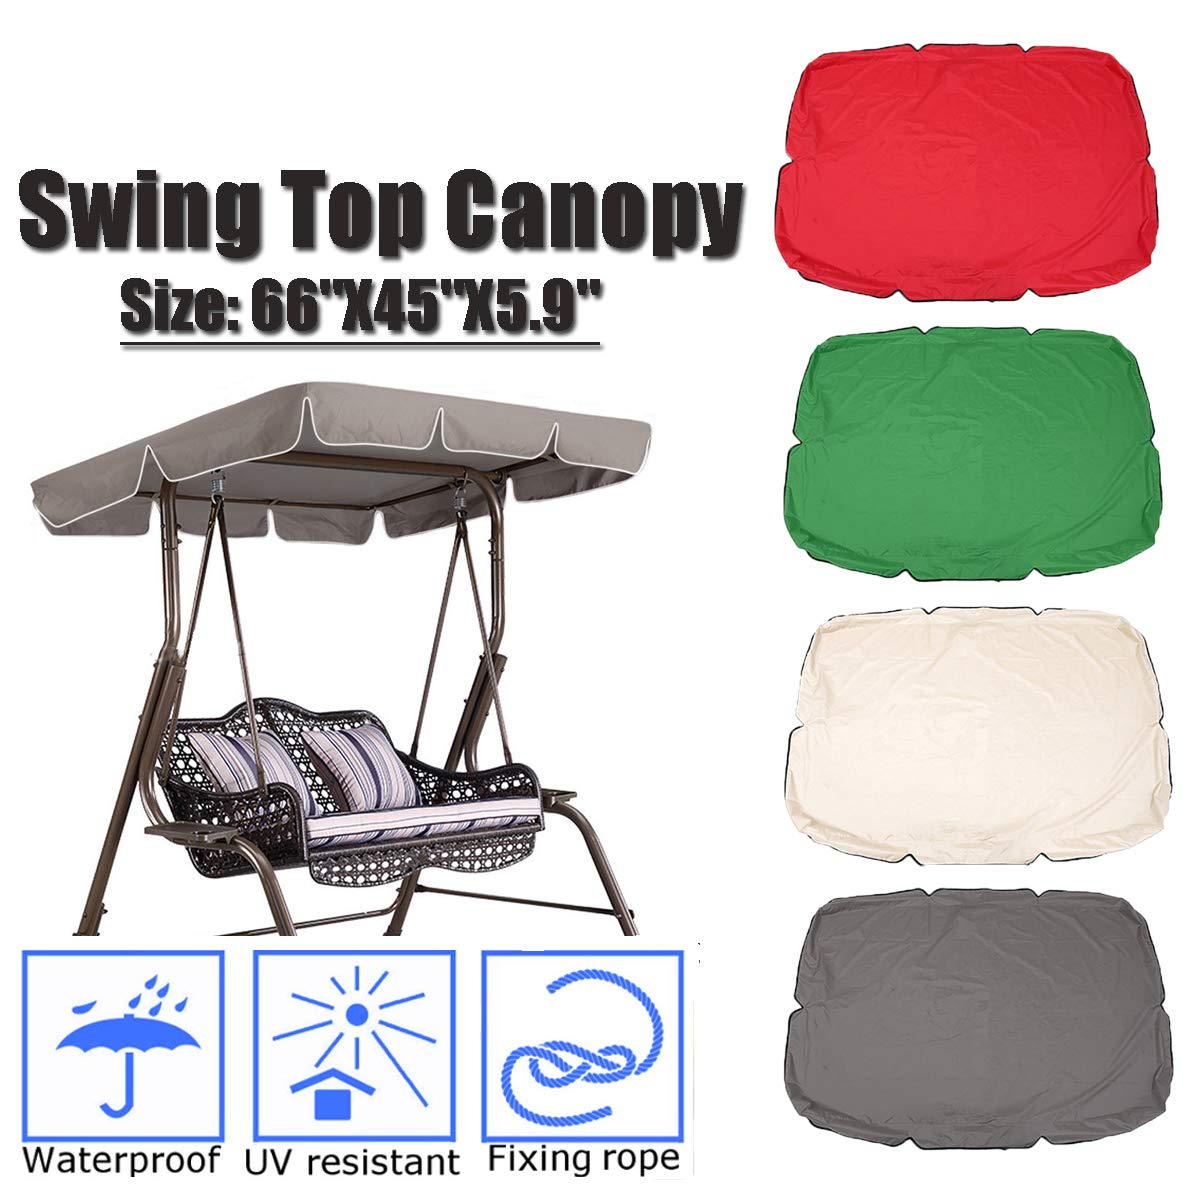 KING DO WAY Swing Chair Canopy Cover Hammock Replacement for Garden Patio Outdoor, Waterproof UV Resistant 66''X45''X5.9'' Khaki